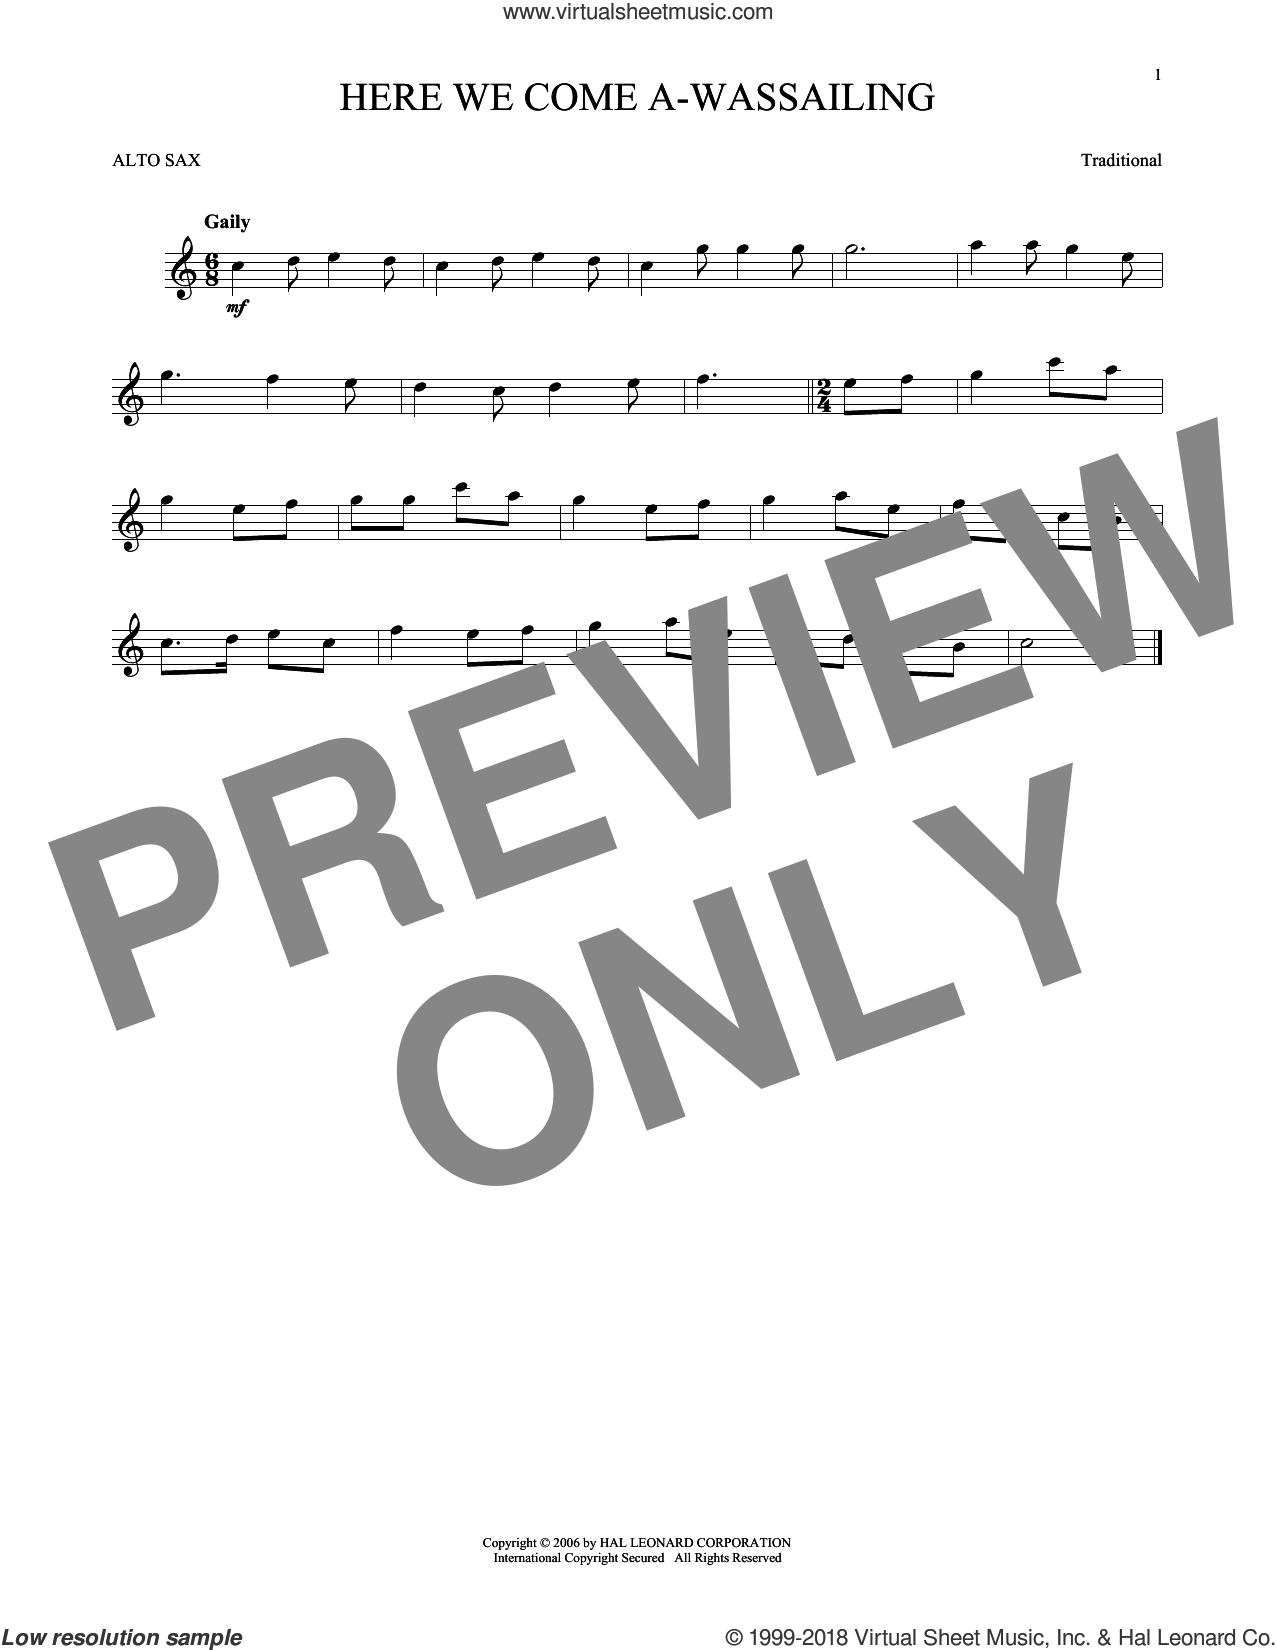 Here We Come A-Wassailing sheet music for alto saxophone solo, intermediate skill level